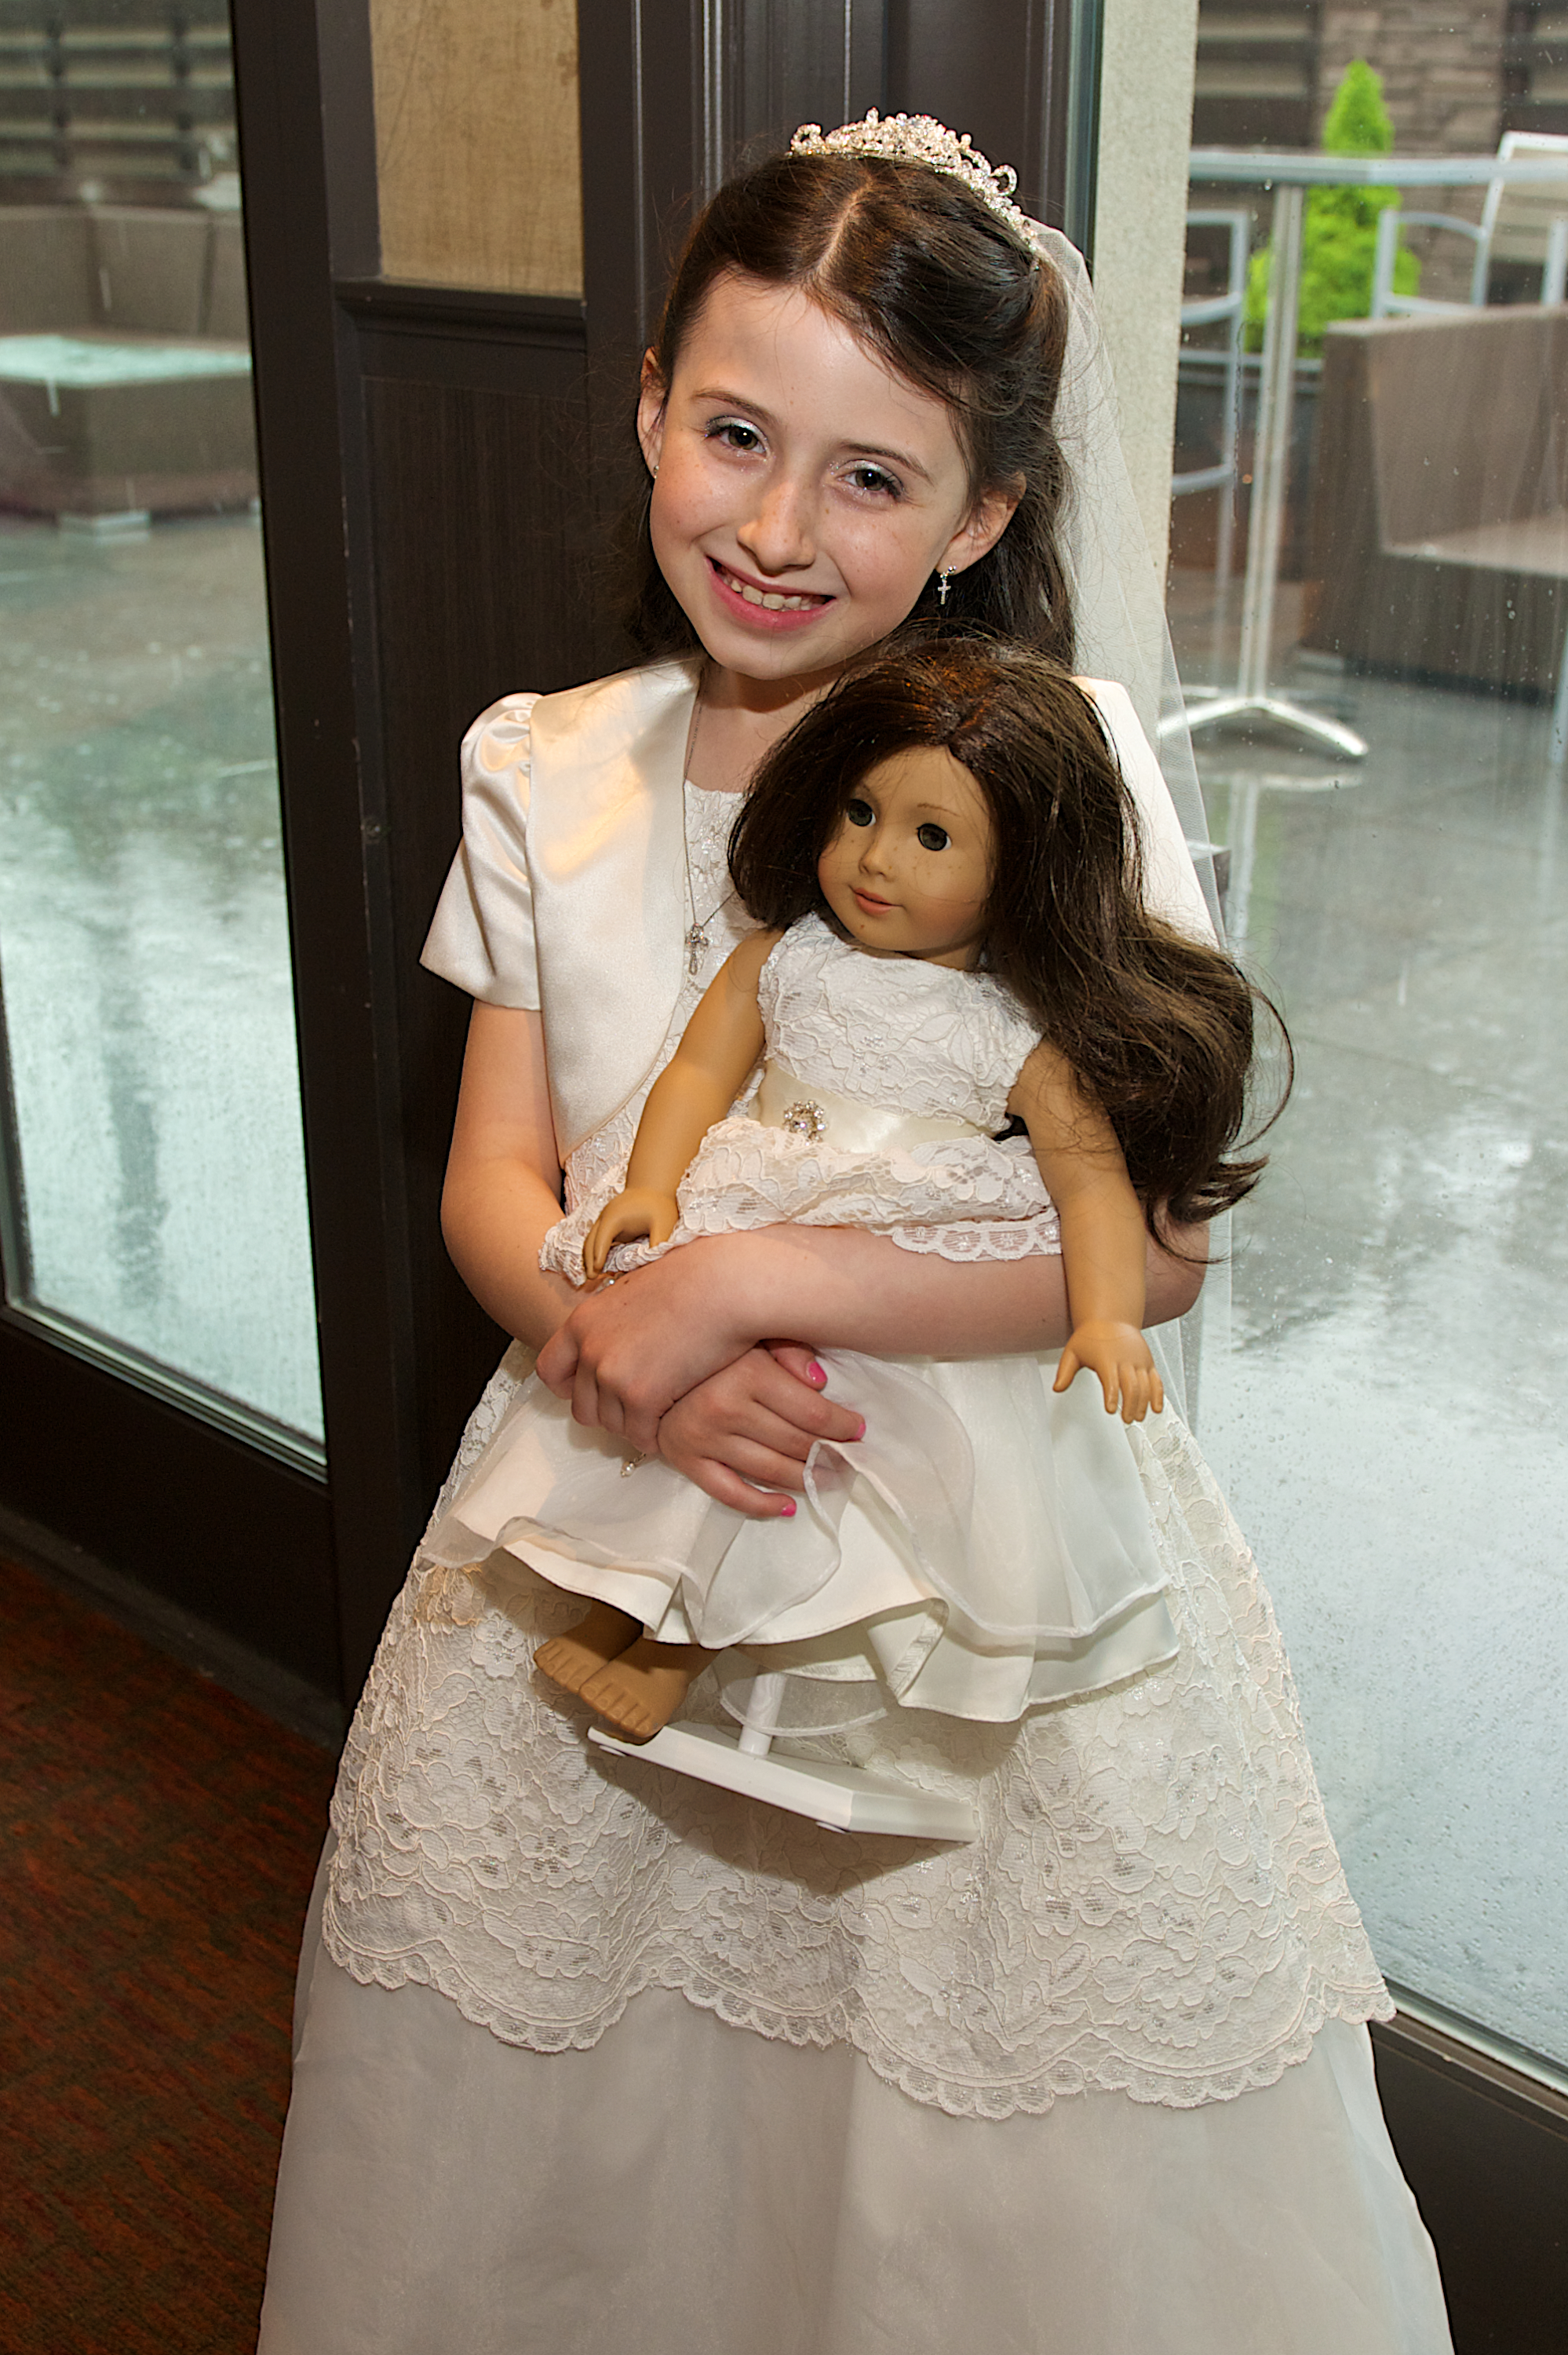 Emma communion with doll